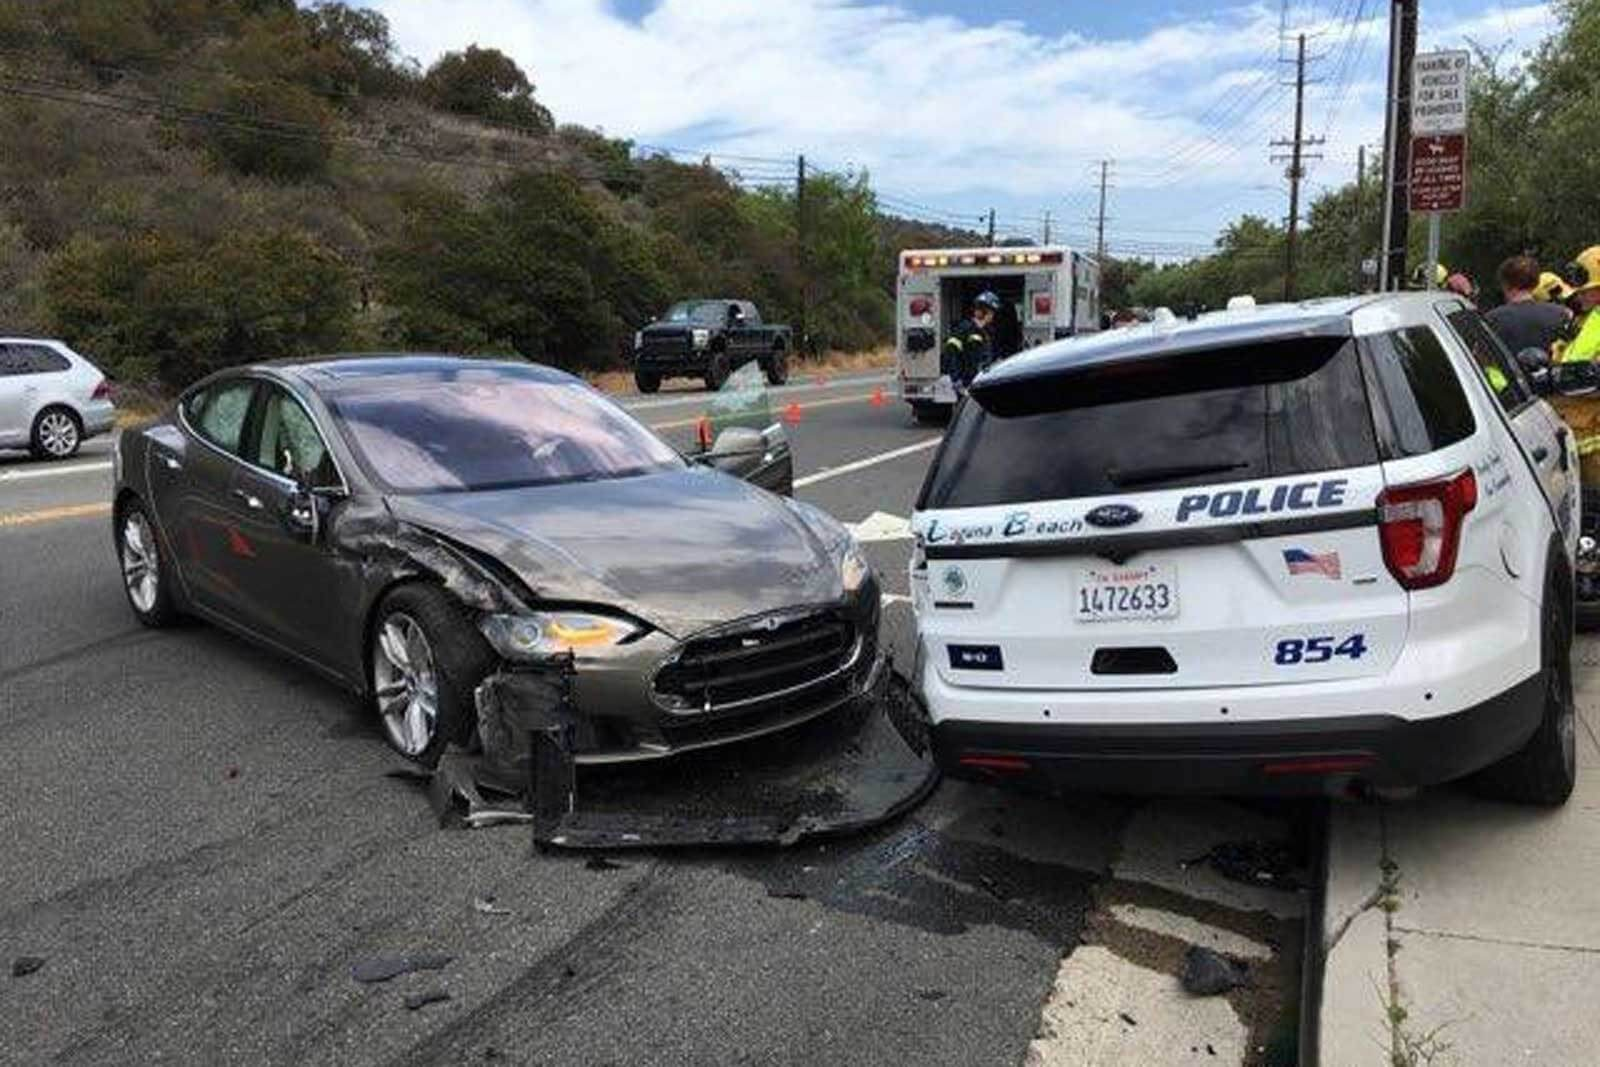 Tesla Model S hits police SUV while in Autopilot mode